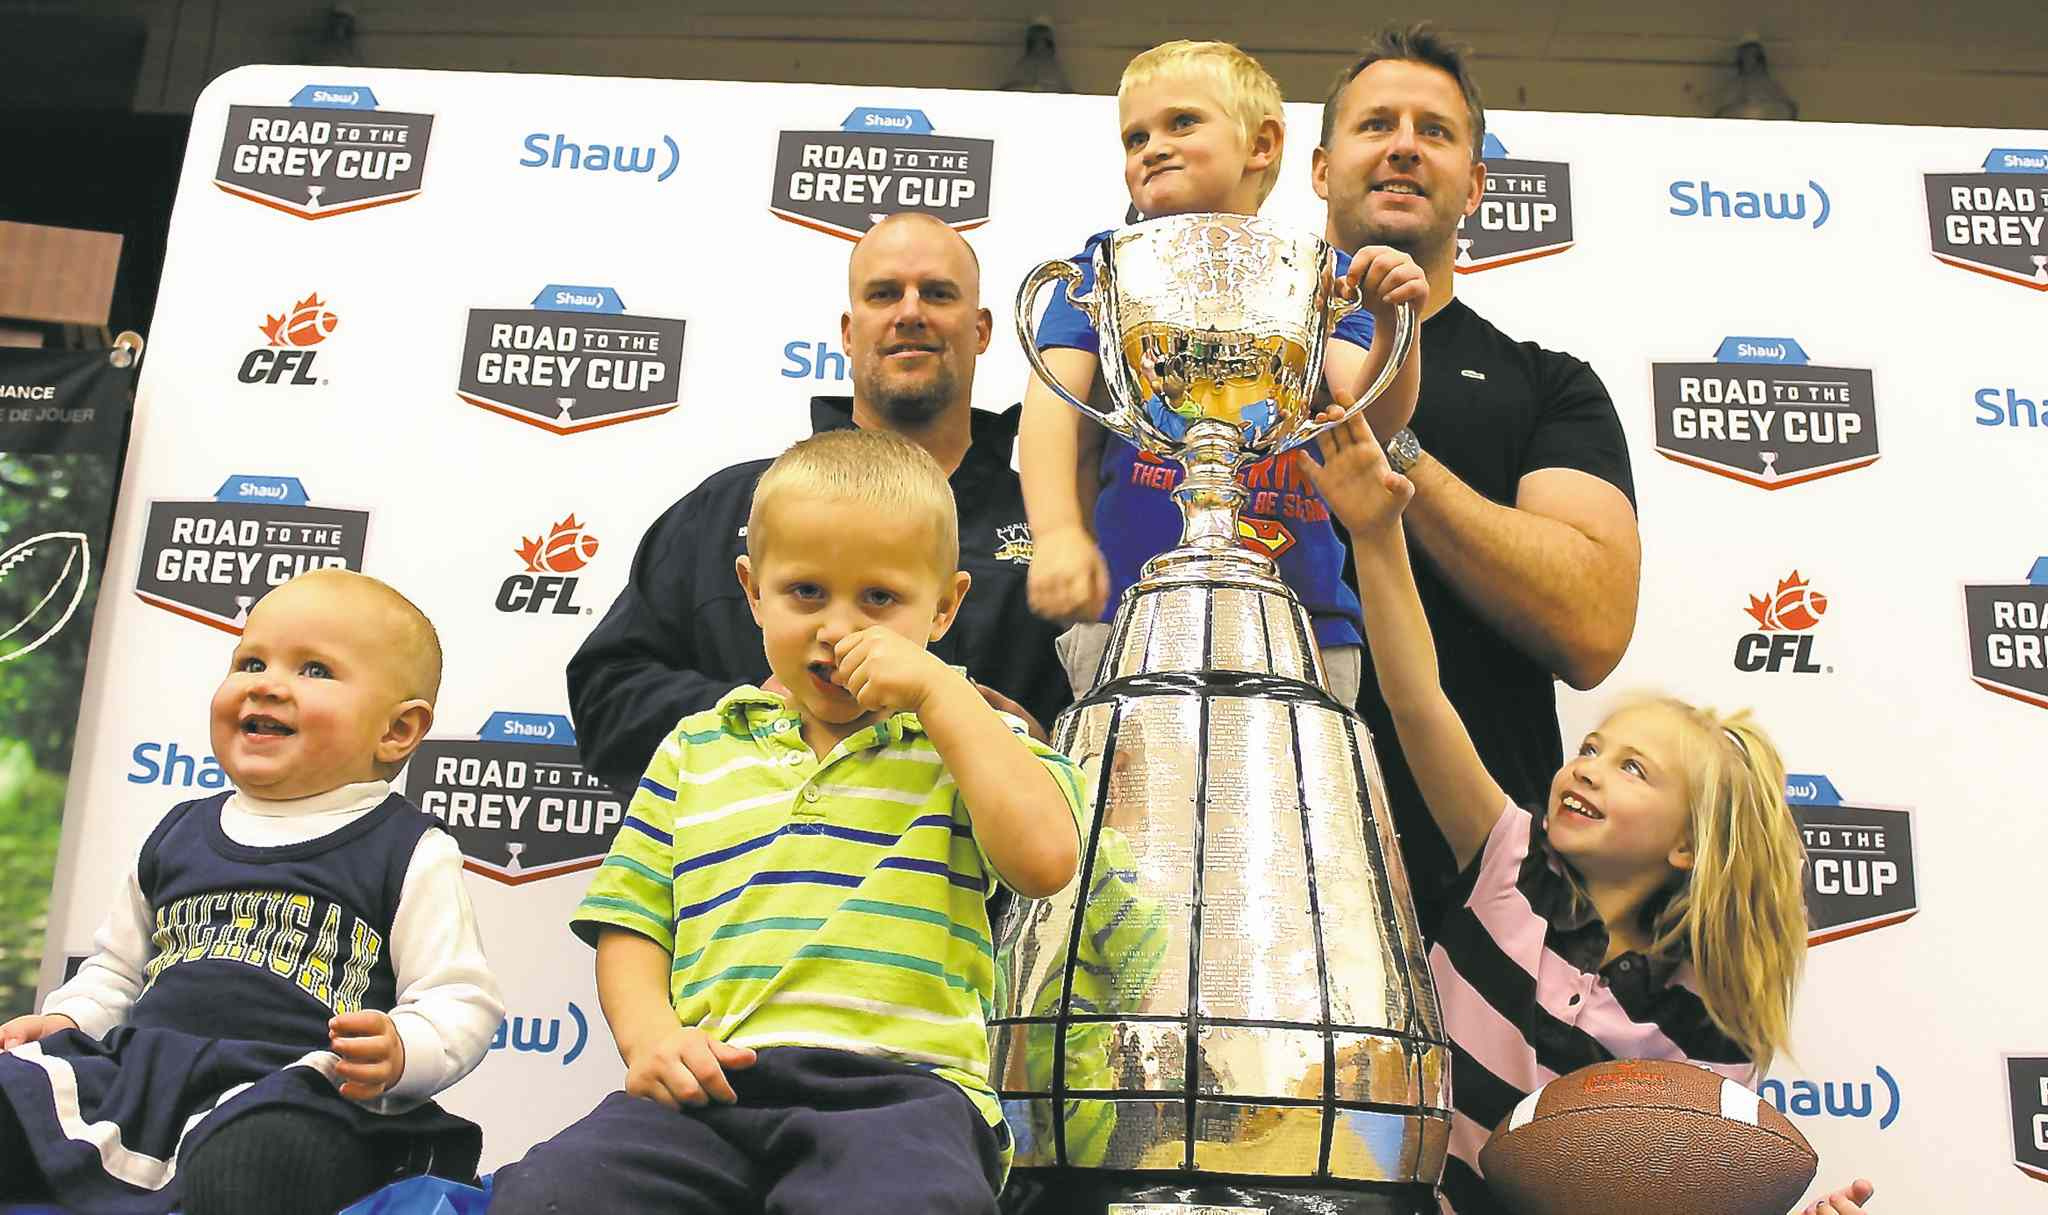 Snow Lake kids get a kick out of acquainting themselves with the Grey Cup Tuesday, under the supervision of former Bombers Brett MacNeil (left) and Doug Brown.